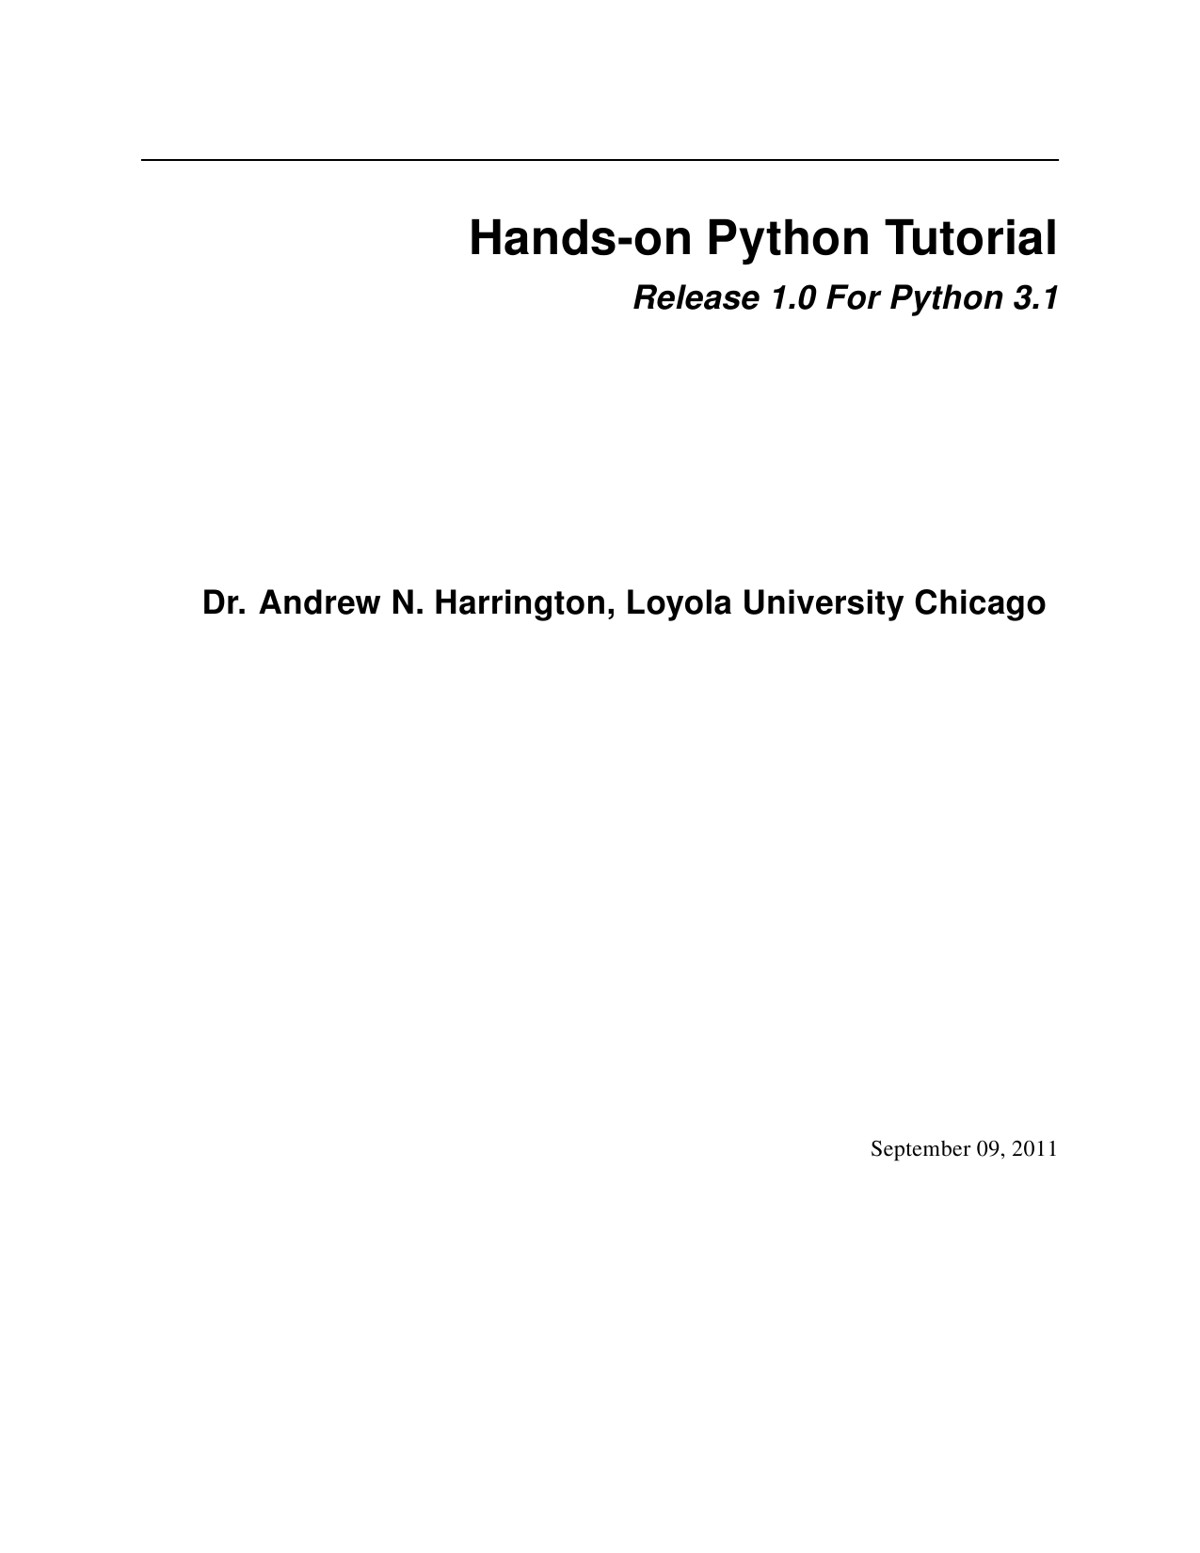 Hands-On Python. A Tutorial Introduction for Beginners. Python. 3.1 Version by Andrew N. Harrington